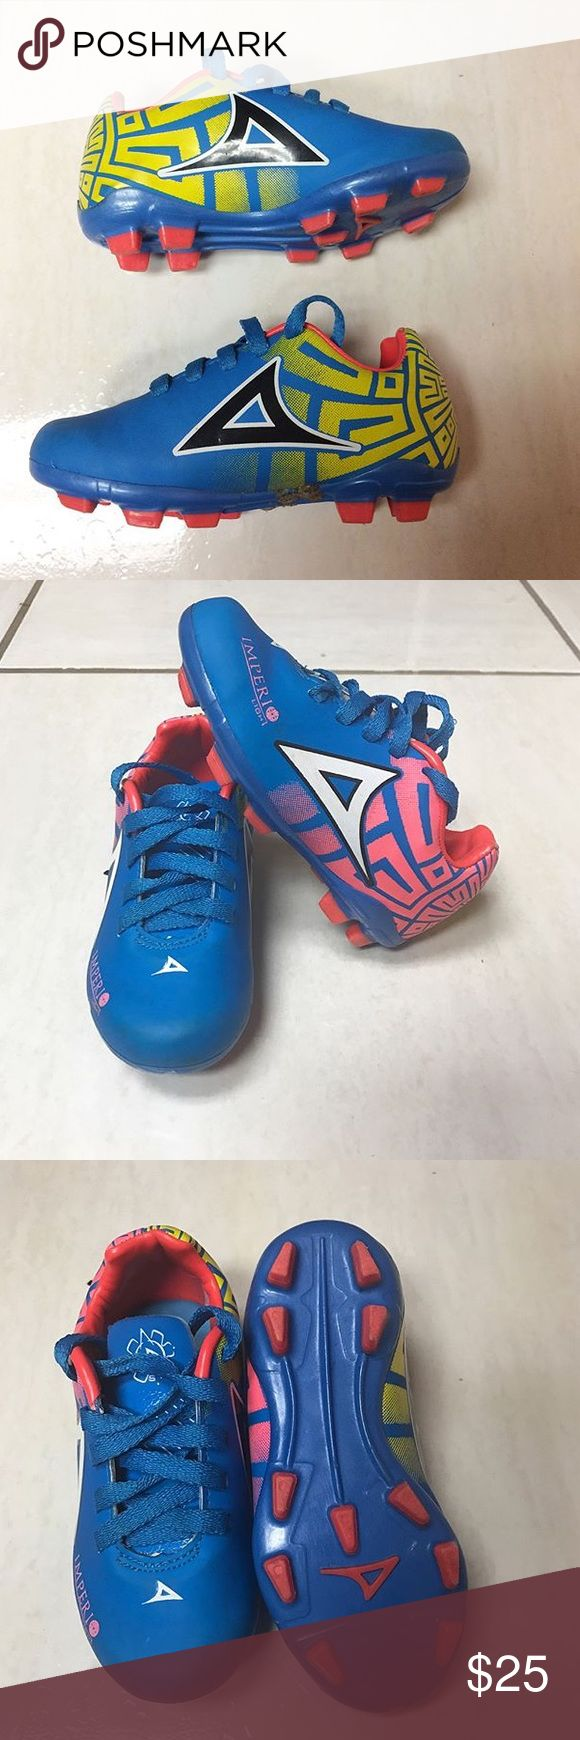 Toddler Soccer Cleats Soccer Cleats size 8c only wore once to the park GUC ‼️PLEASE MAKE SURE TO LOOK AT LAST PHOTO‼️ Soccer Cleats Shoes Sneakers